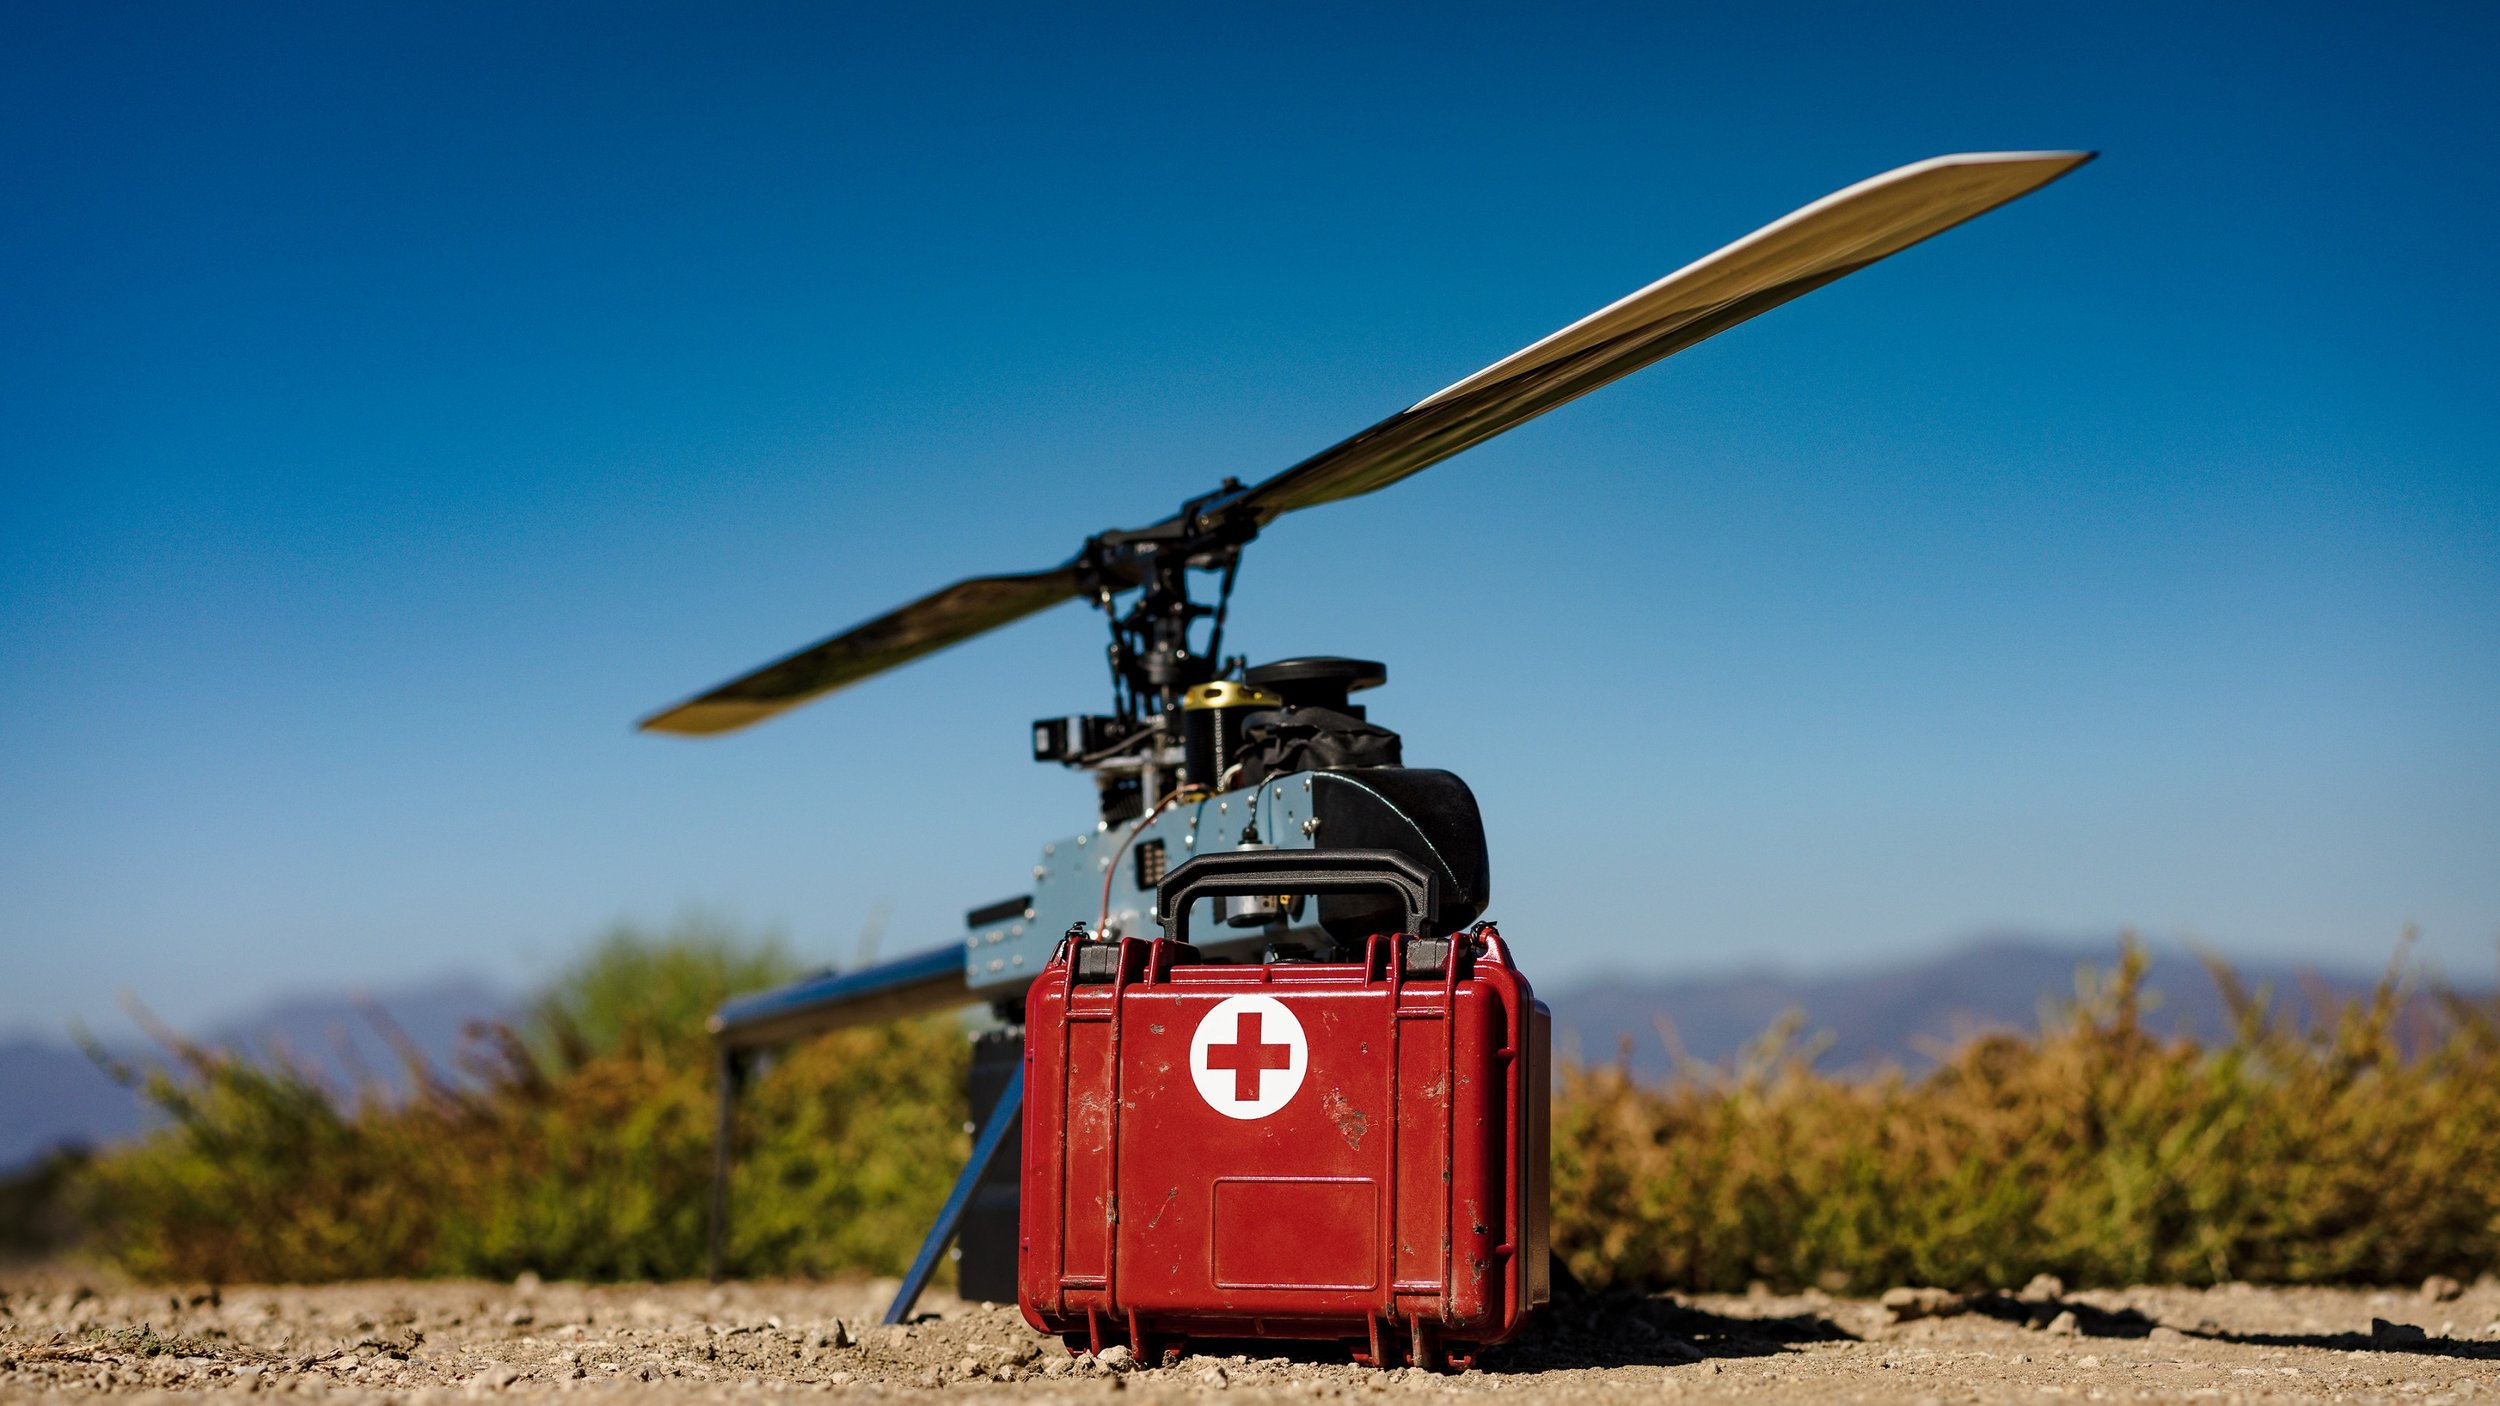 anduril-heli-drone-medical-supply-drop-2.jpg